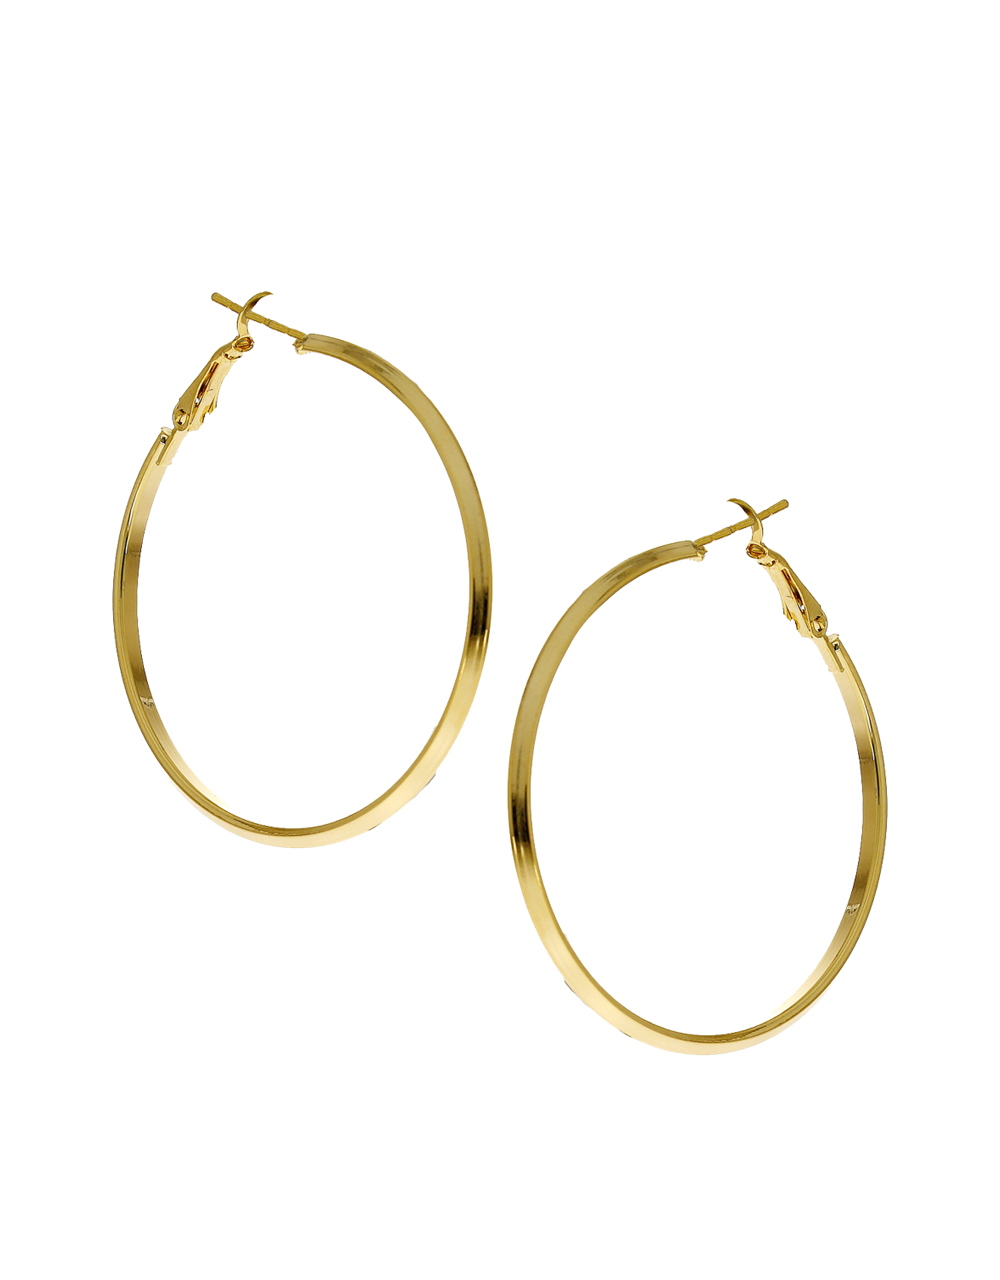 Hoop Earring, latest hoop earring, earrings, diamond studded earring, fashion jewellery, artificialj